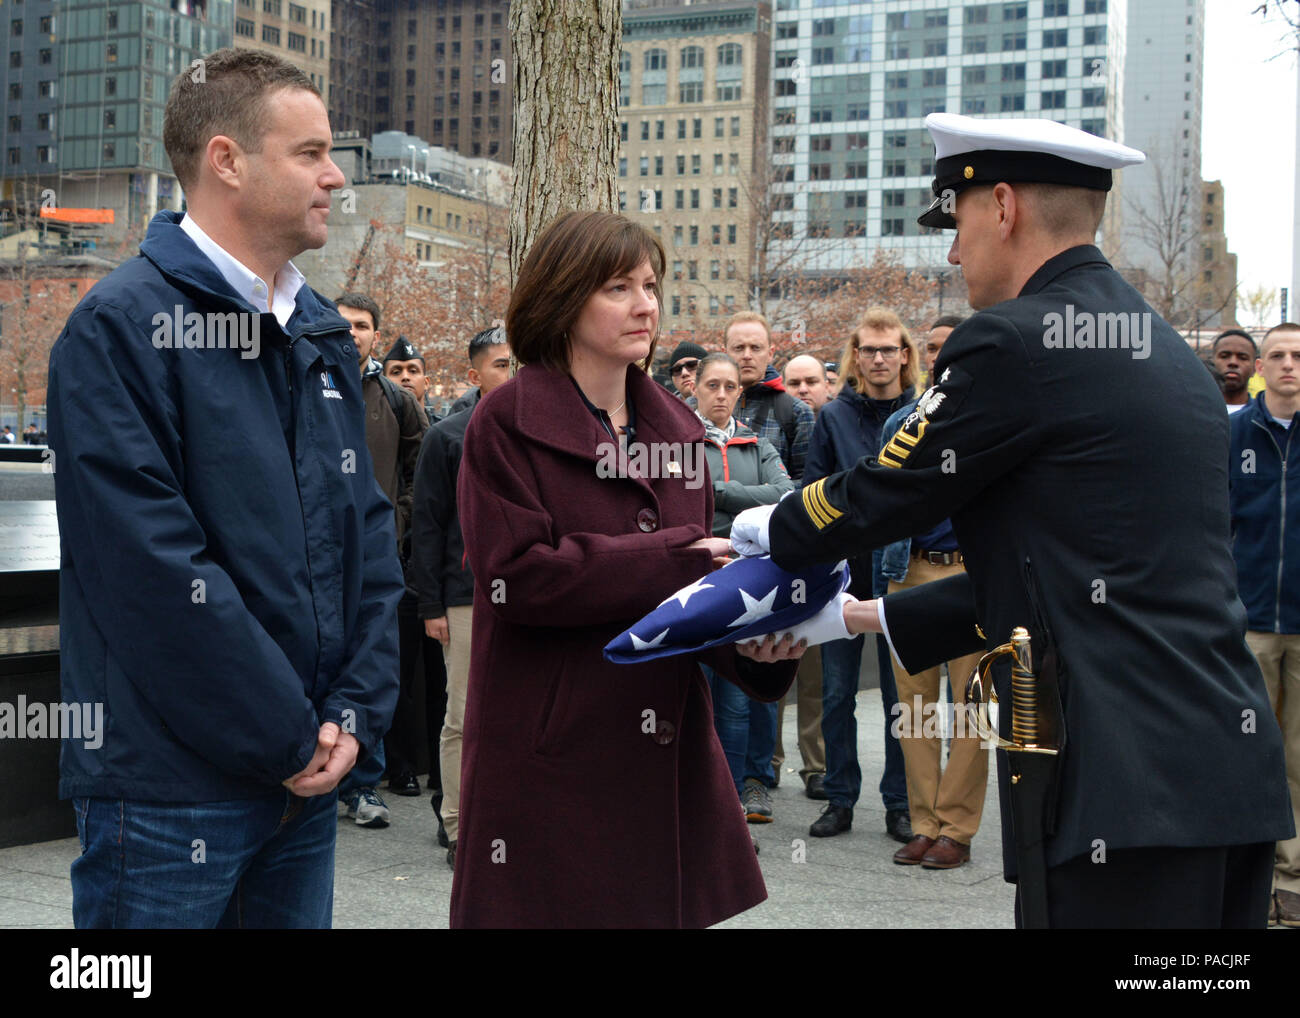 160315-N-LV695-068 NEW YORK (March 15, 2015) Senior Chief Operations Specialist Ryan King, assigned to U.S. Navy Ceremonial Guard, hands off a flag to show support for the staff at the 9/11 Memorial Museum. The ceremonial guard is the Navy's most prestigious unit and conducts ceremonies for presidential inaugurations, distinguished visitors, and burials at Arlington National Cemetery. (U.S. Navy photo by Mass Communication Specialist 2nd Class Destiny Cheek/Released) Stock Photo